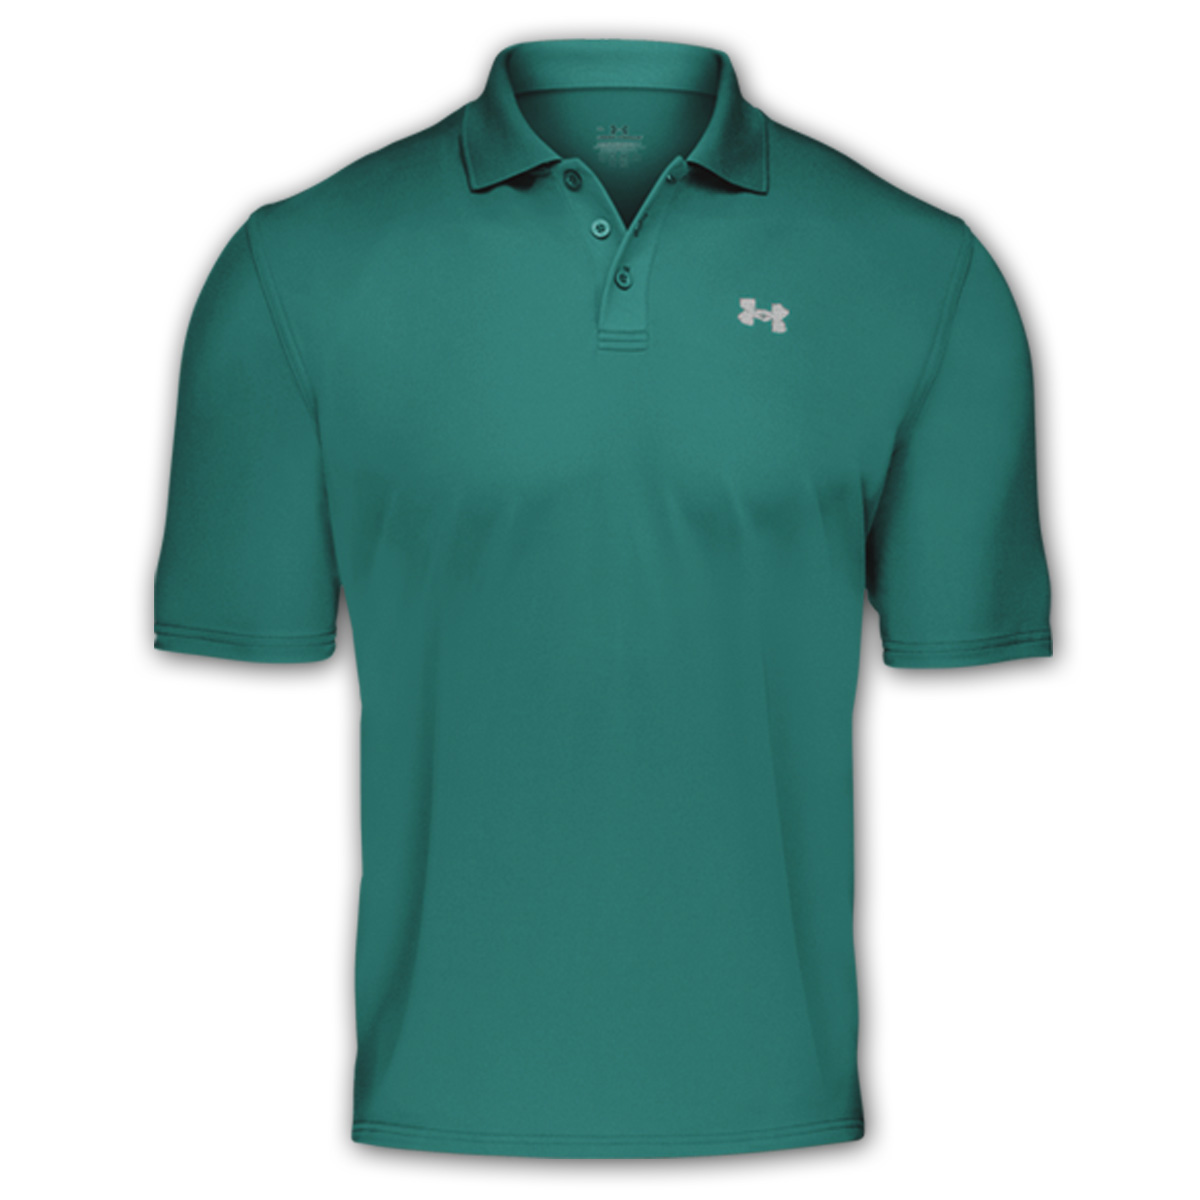 under armour 2011 men 39 s performance polo golf shirt ebay